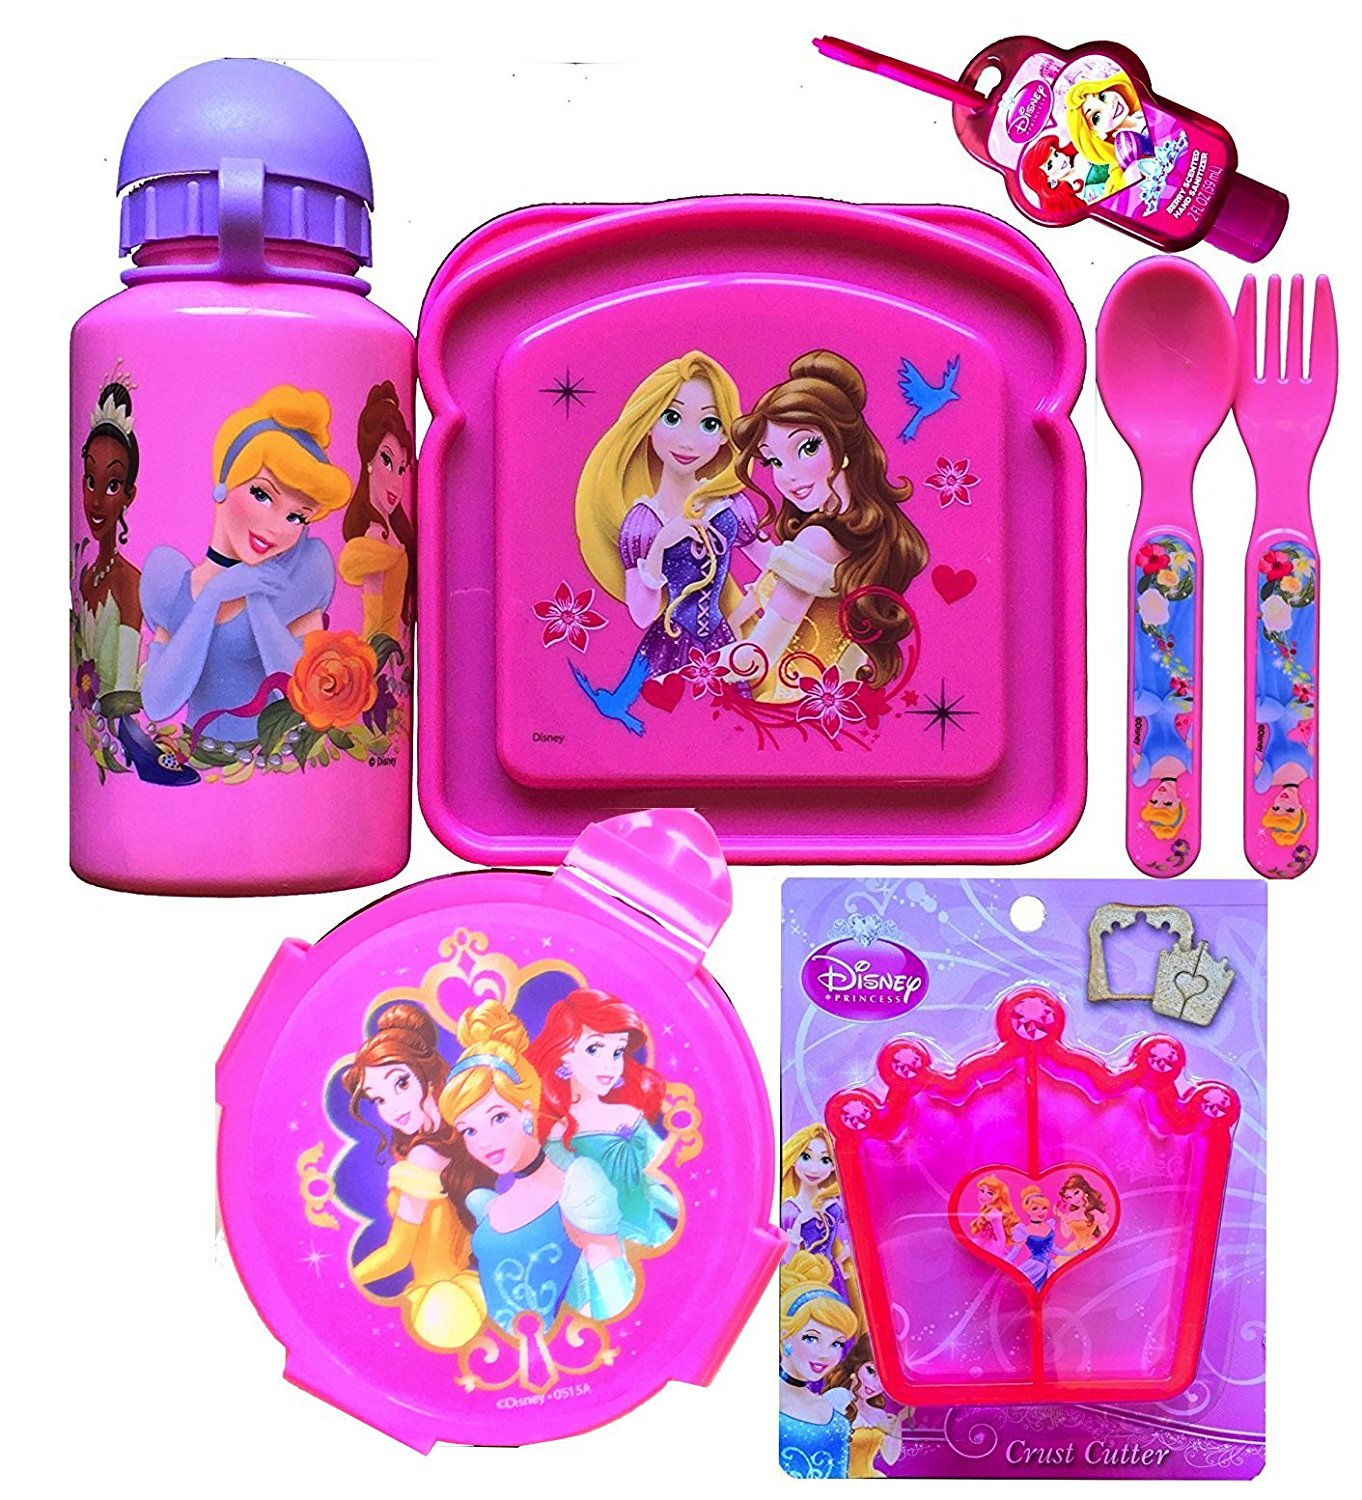 Disney Princess 7 Piece Lunch Set Includes Princess Bottle, Sandwich Container, Snack Container, Utensils with Princess Crust Cutter and Hand Sanitizer (Sports Bottle)